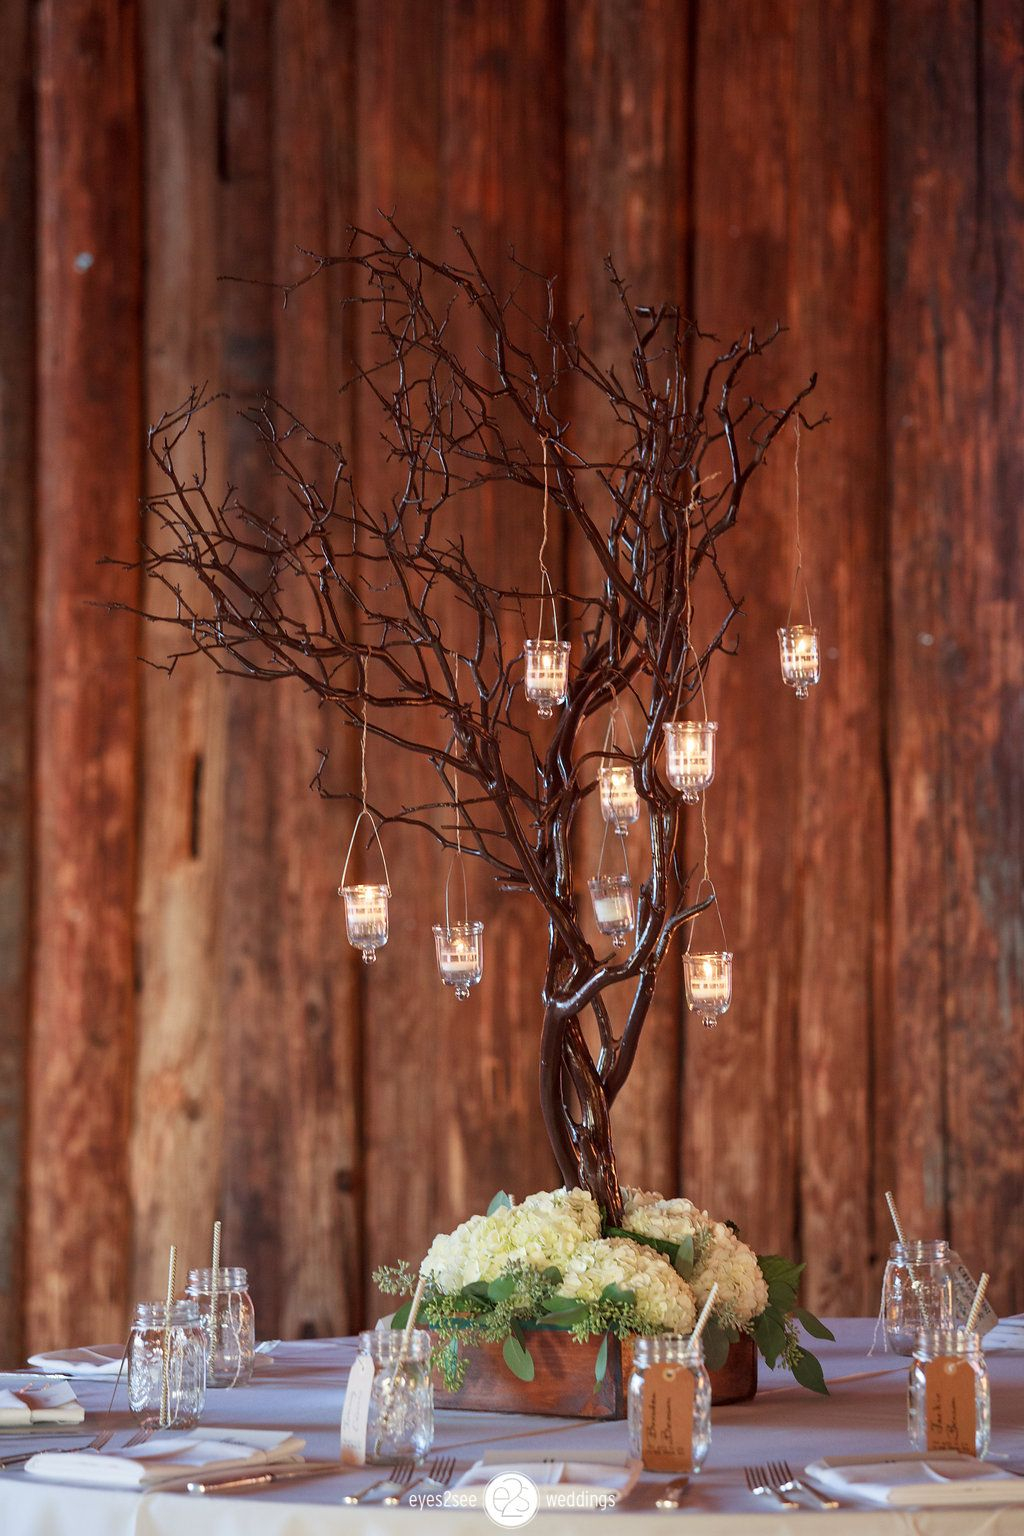 Manzanita Tree With Hanging Votives And Hydrangea Rusticwedding Centerpiece Venue Desert Foot Tree Centrepiece Wedding Branch Centerpieces Tree Centerpieces